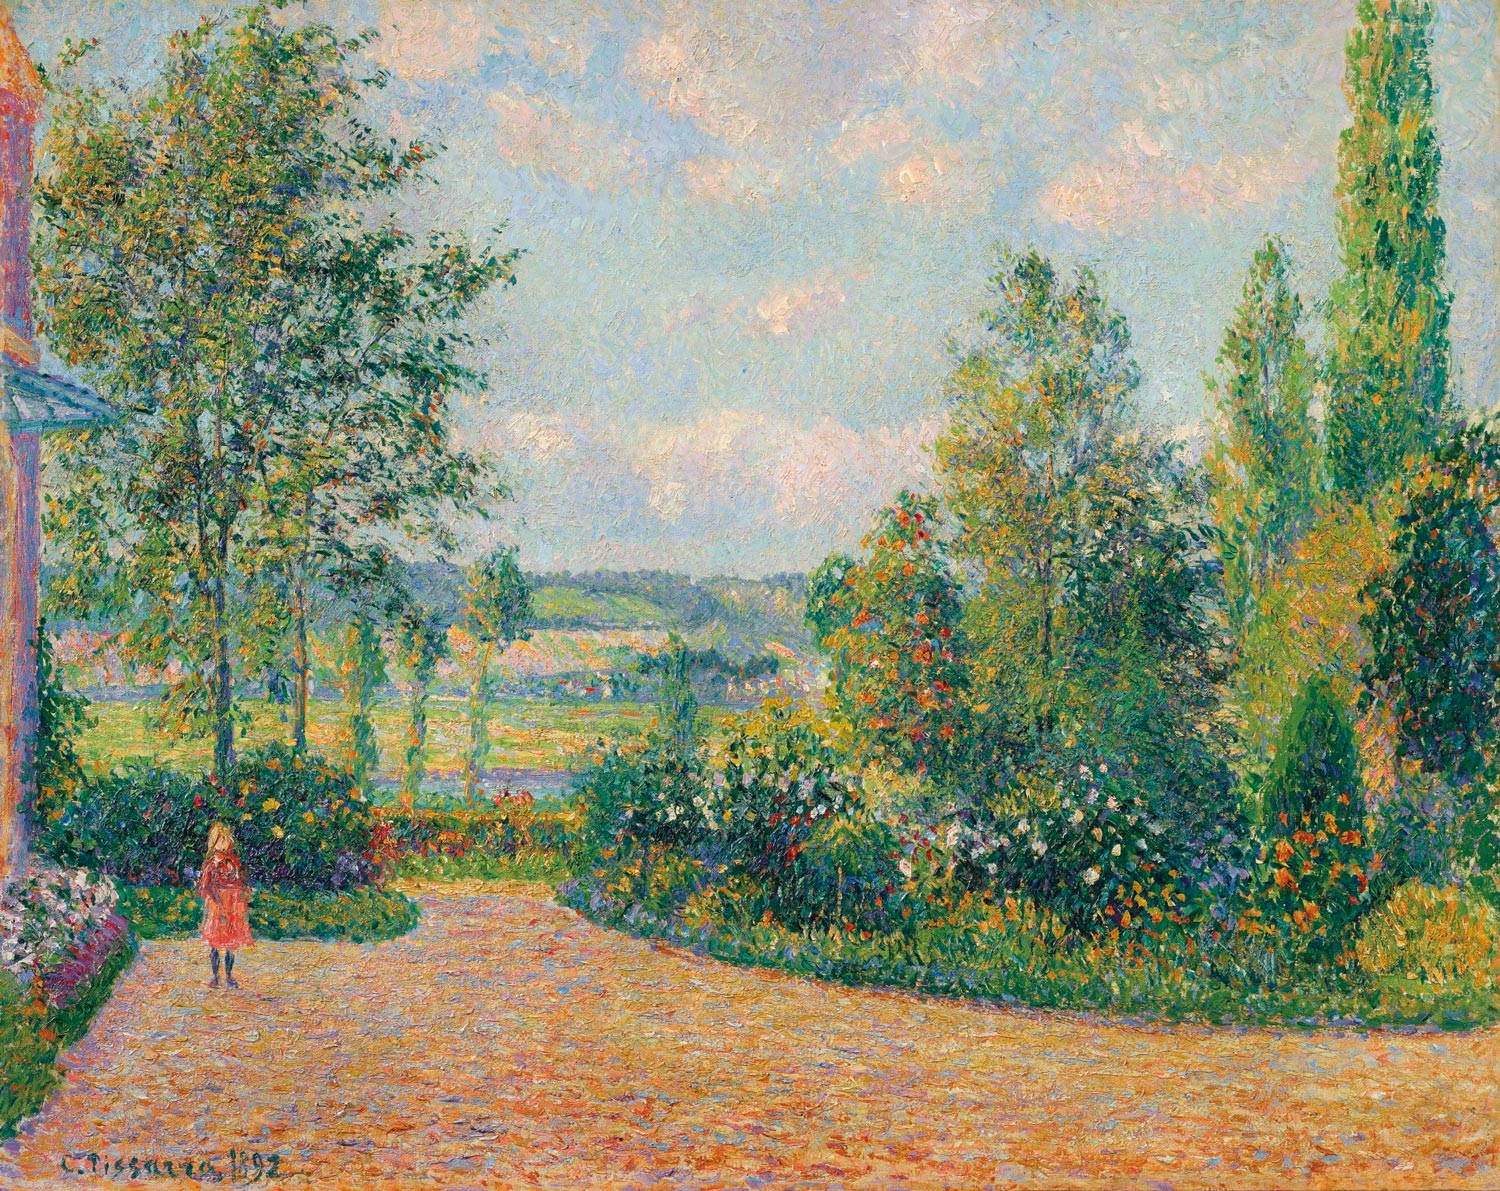 Camille Pissarro (1830-1903). Le Jardin dOctave Mirbeau, la terrasse, Les Damps, 1892. Oil on canvas.  28 ¾ x 36 ¼ in. Estimate $3,000,000-5,000,000. Offered in the Impressionist and Modern Art Evening Sale on 13 May at Christie's in New York. The Robert B. and Beatrice C. Mayer Family Collection